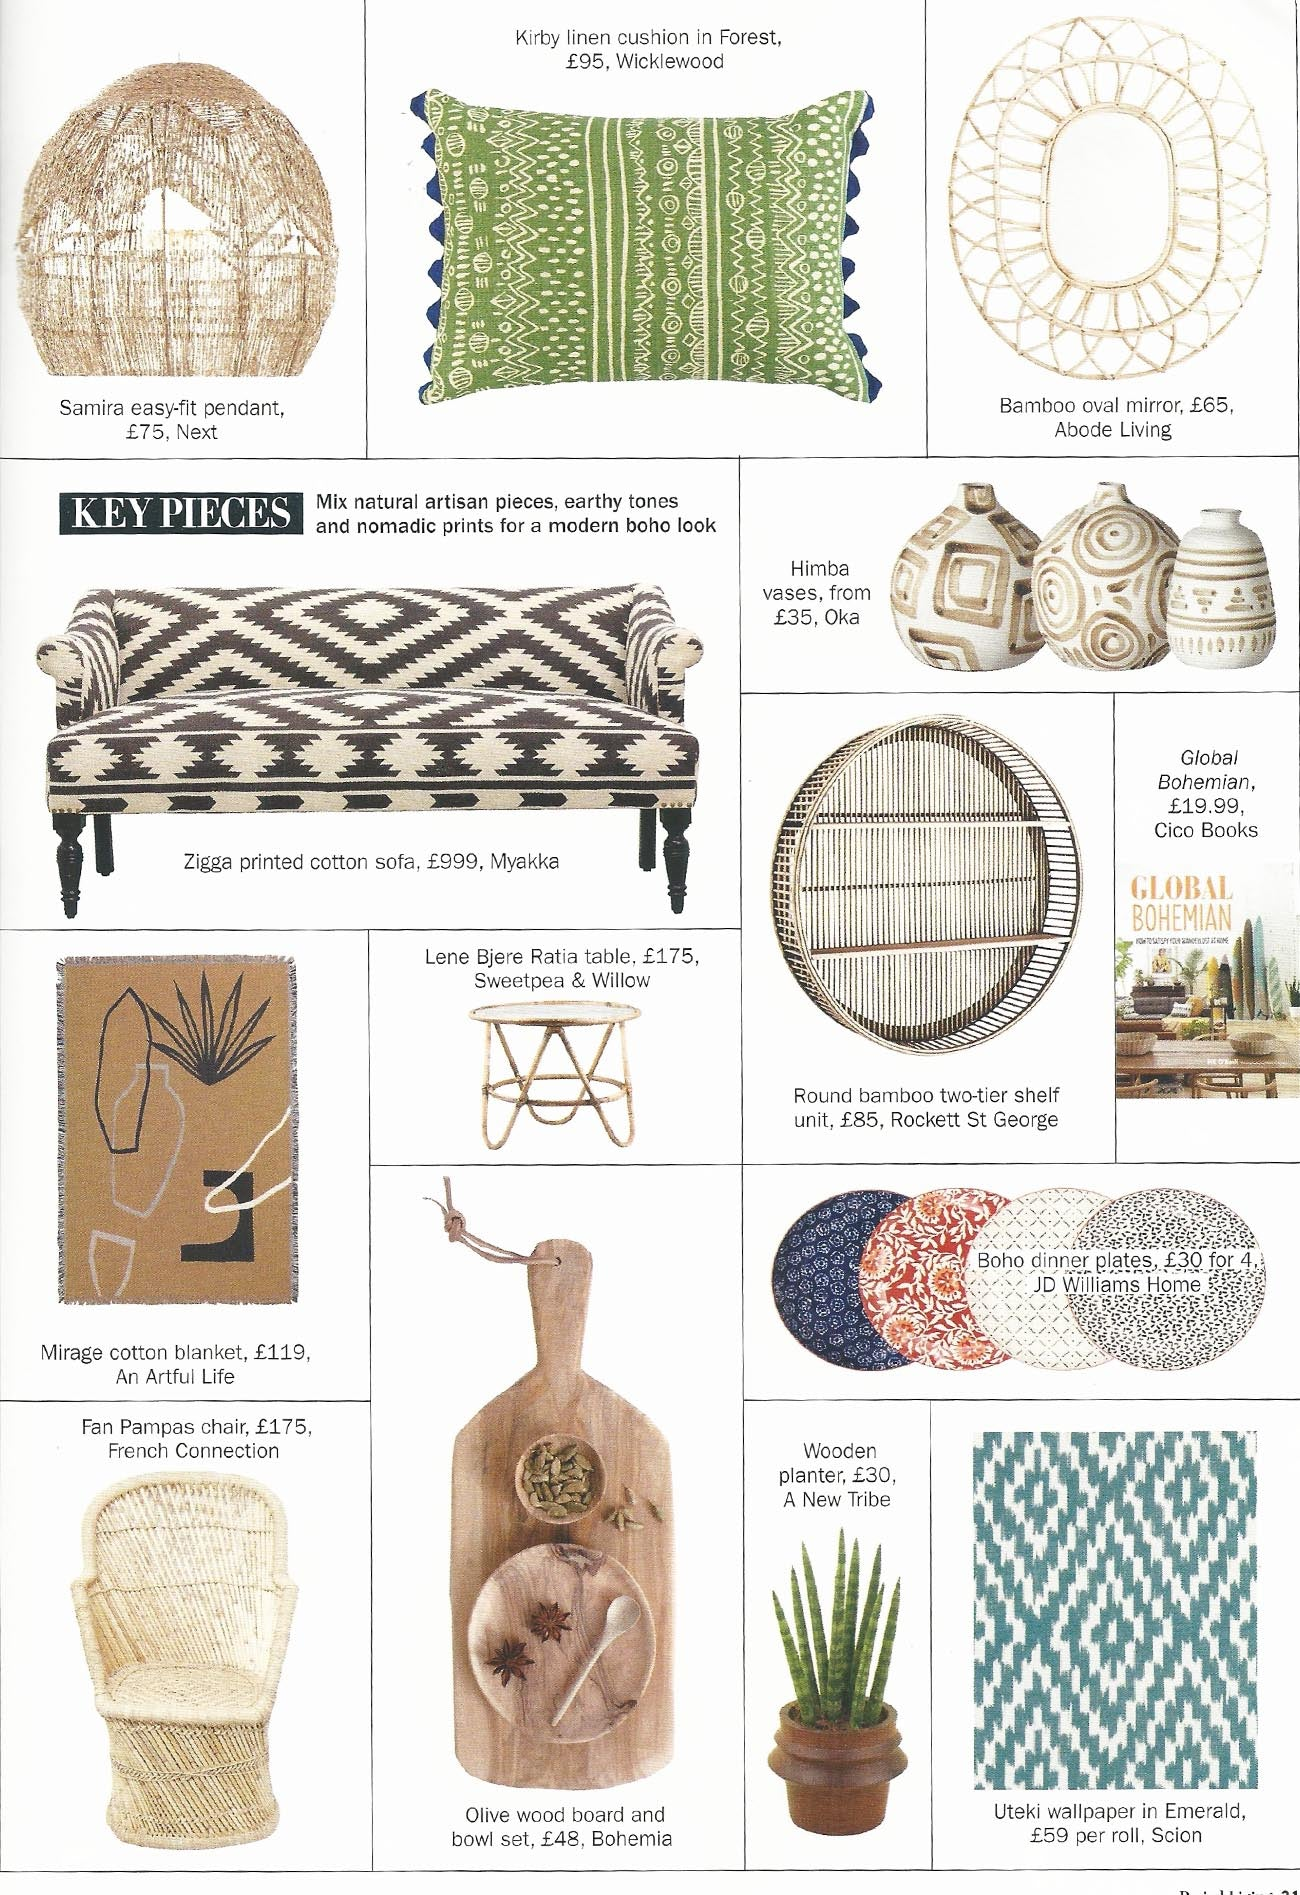 Wicklewood green oblong Kirby patterned cushion featured in Period Living July 2019 issue